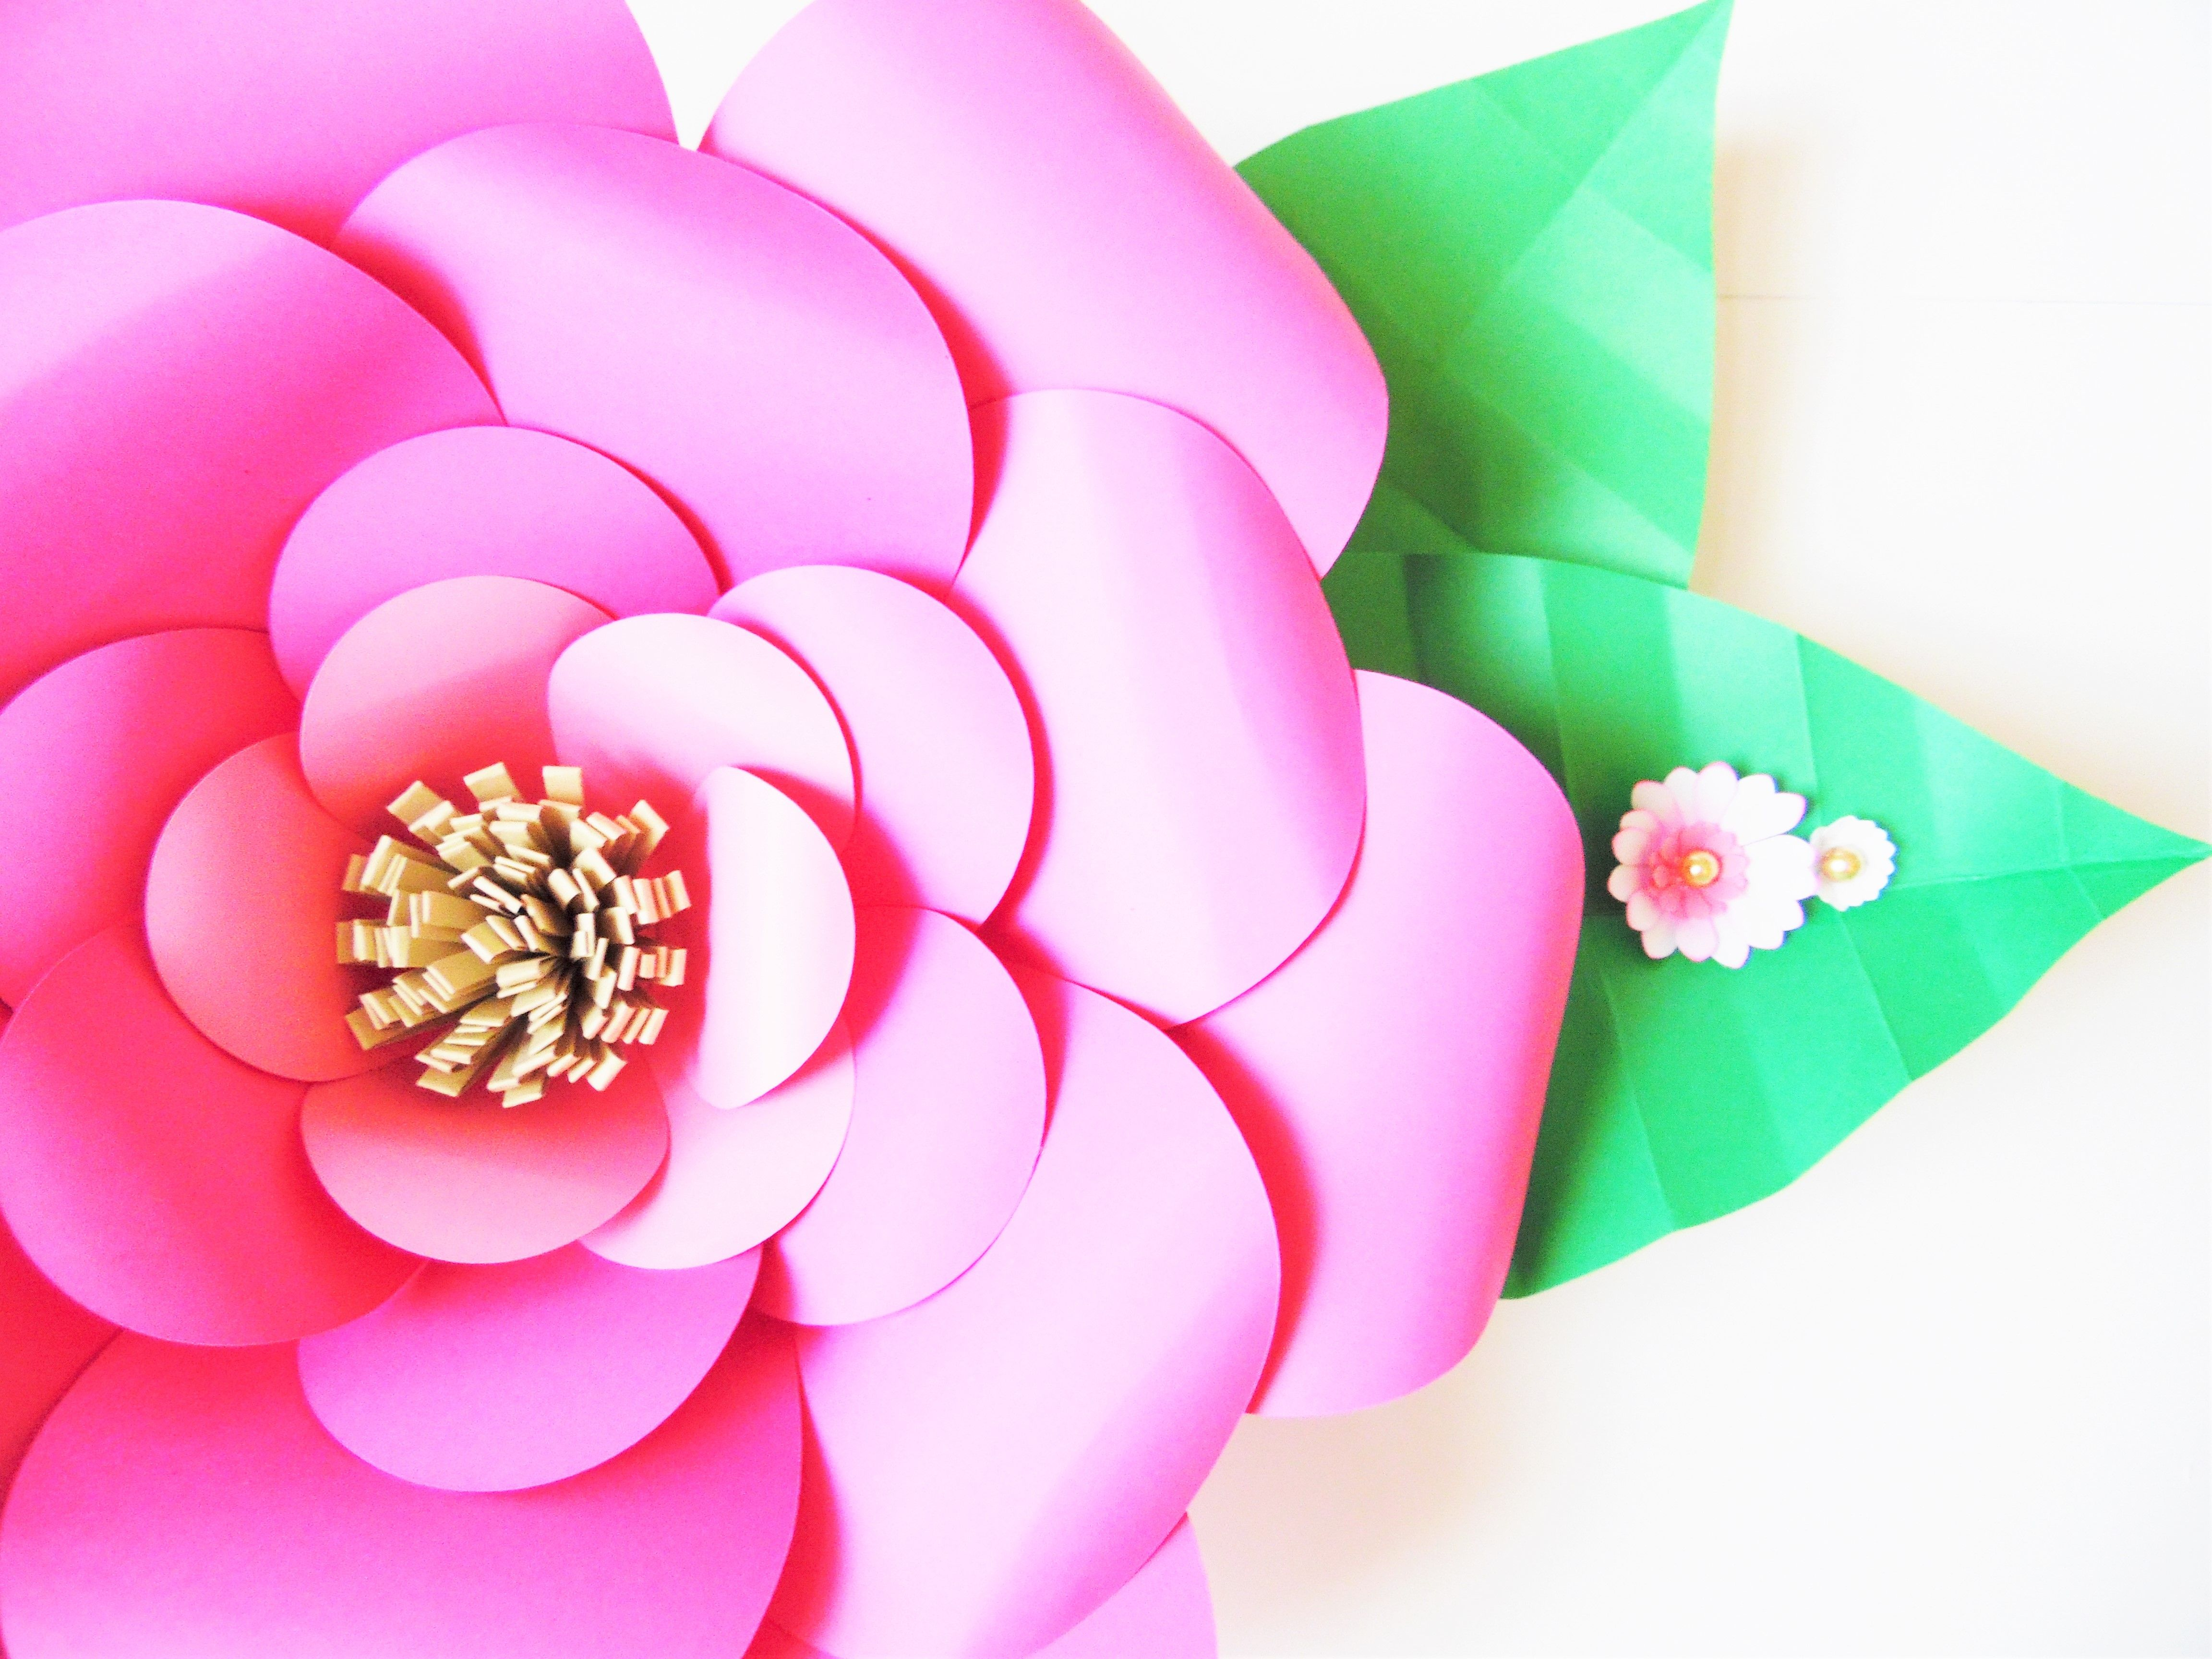 How to make large paper flowers easy diy giant paper flower large looking for a fun and easy diy to make giant paper flower for decorating learn mightylinksfo